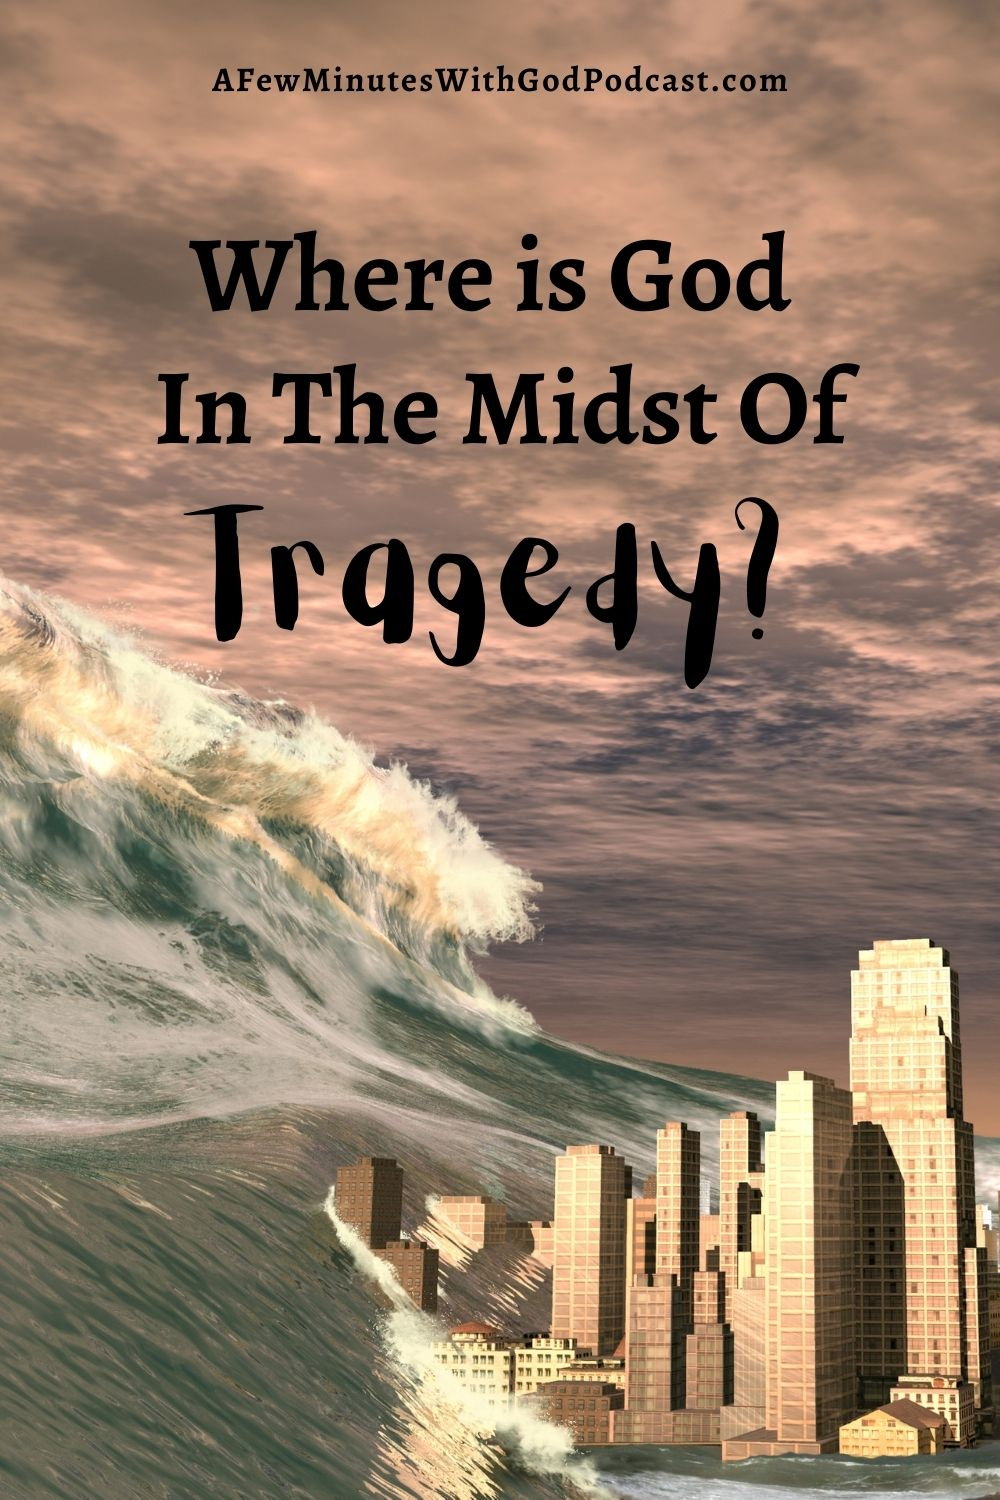 Where is God In The Midst Of Tragedy?